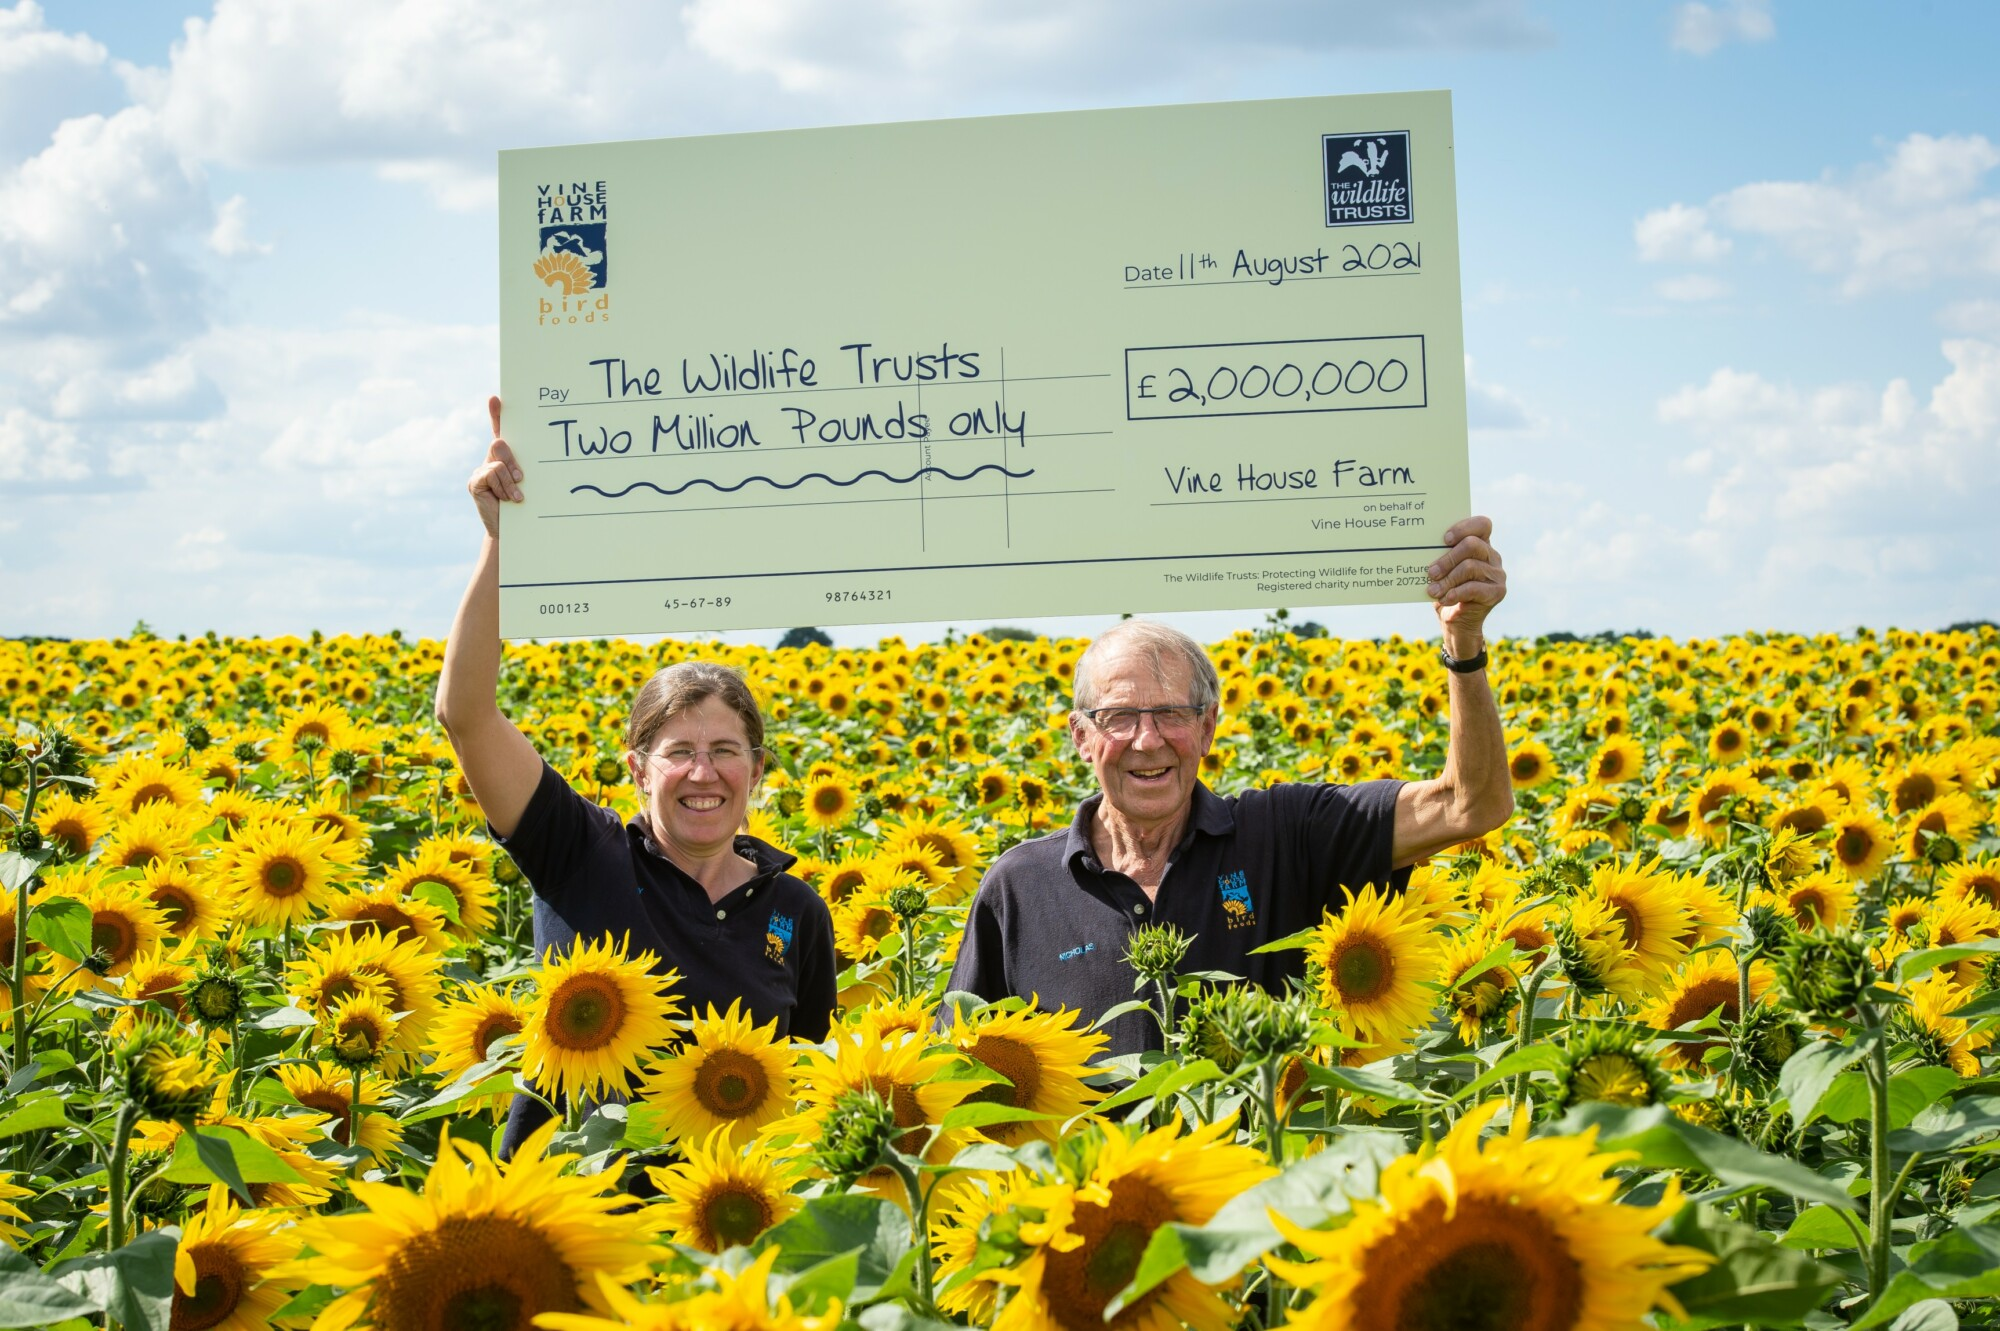 Vine House Farm £2 million for Wildlife Trusts Lucy Taylor & Nicholas Watts972041(c) Matthew Roberts (1) in a field of sunflowers.